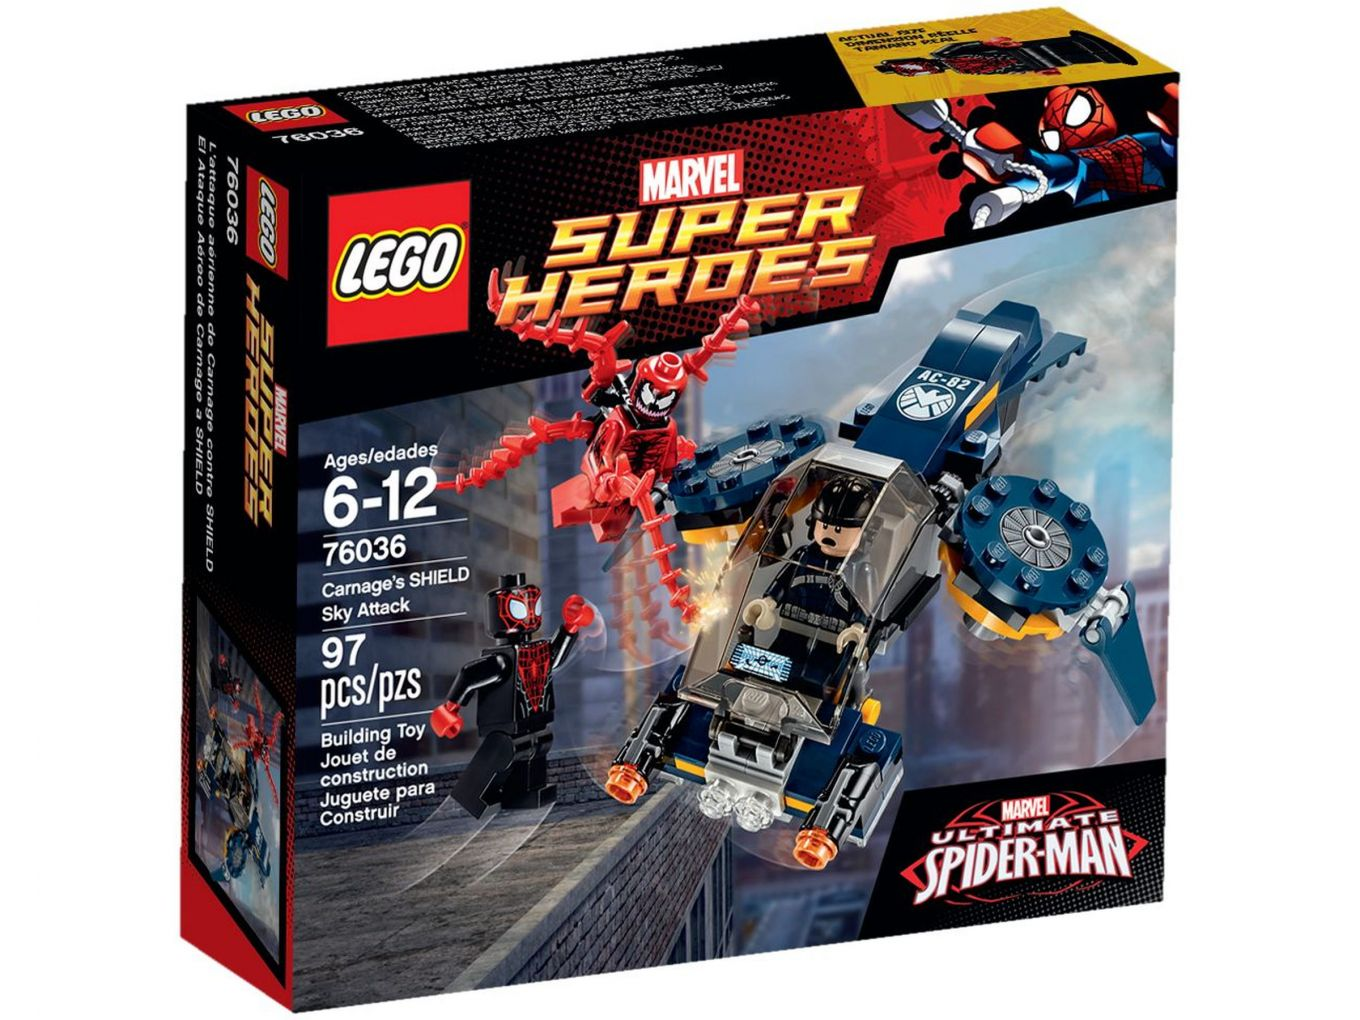 LEGO Super Heroes 76036 Carnage's SHIELD Luchtaanval